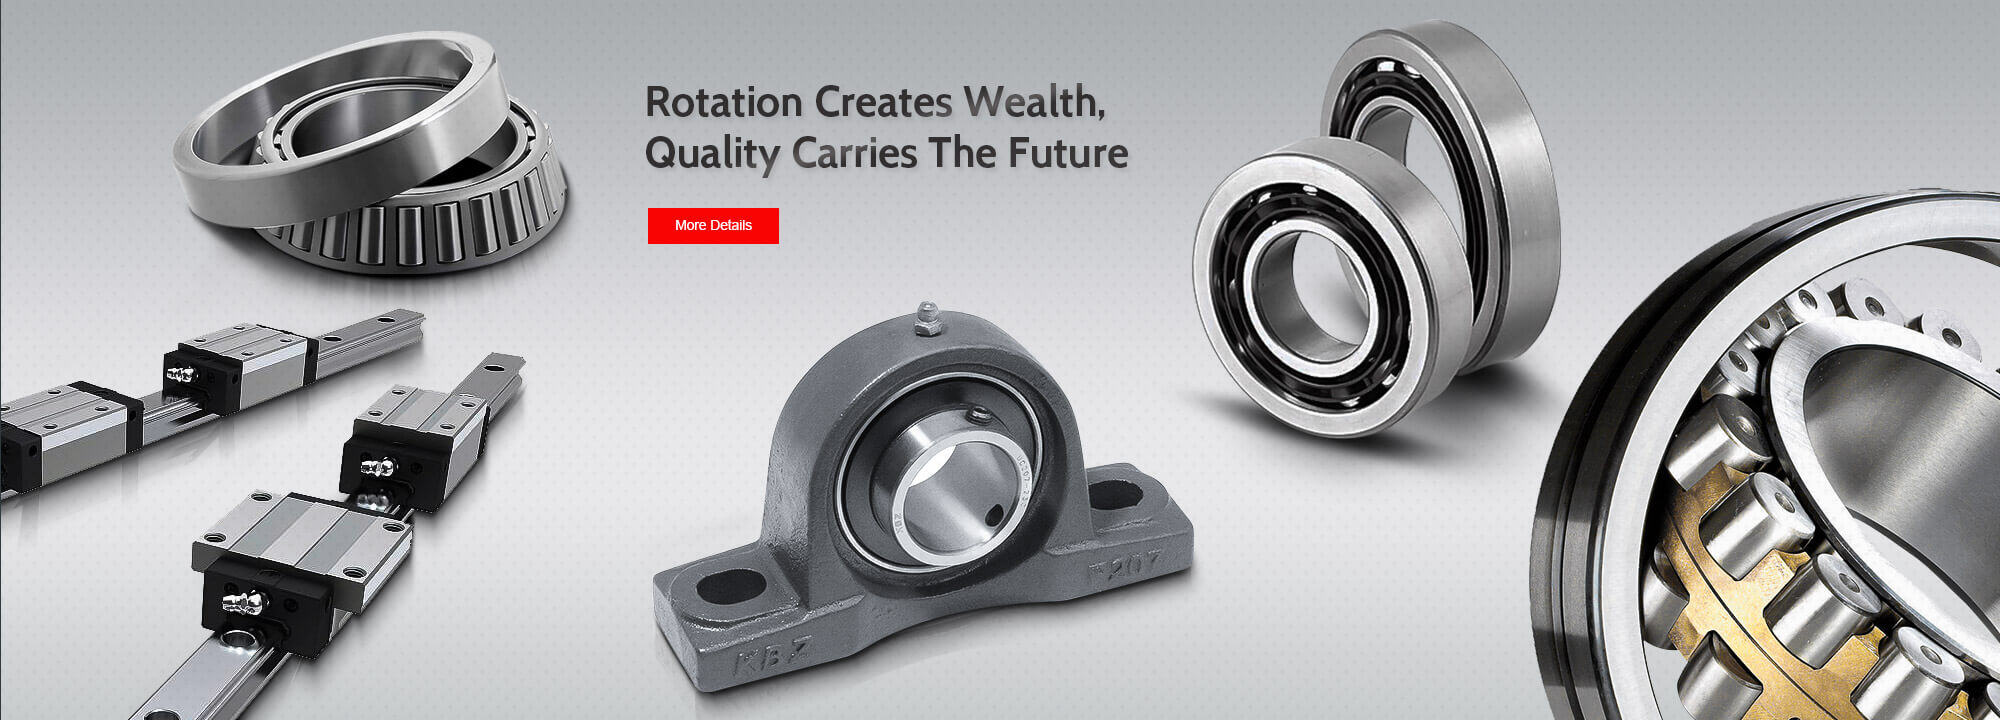 Rotation Creates Wealth, Quality Carries The Future